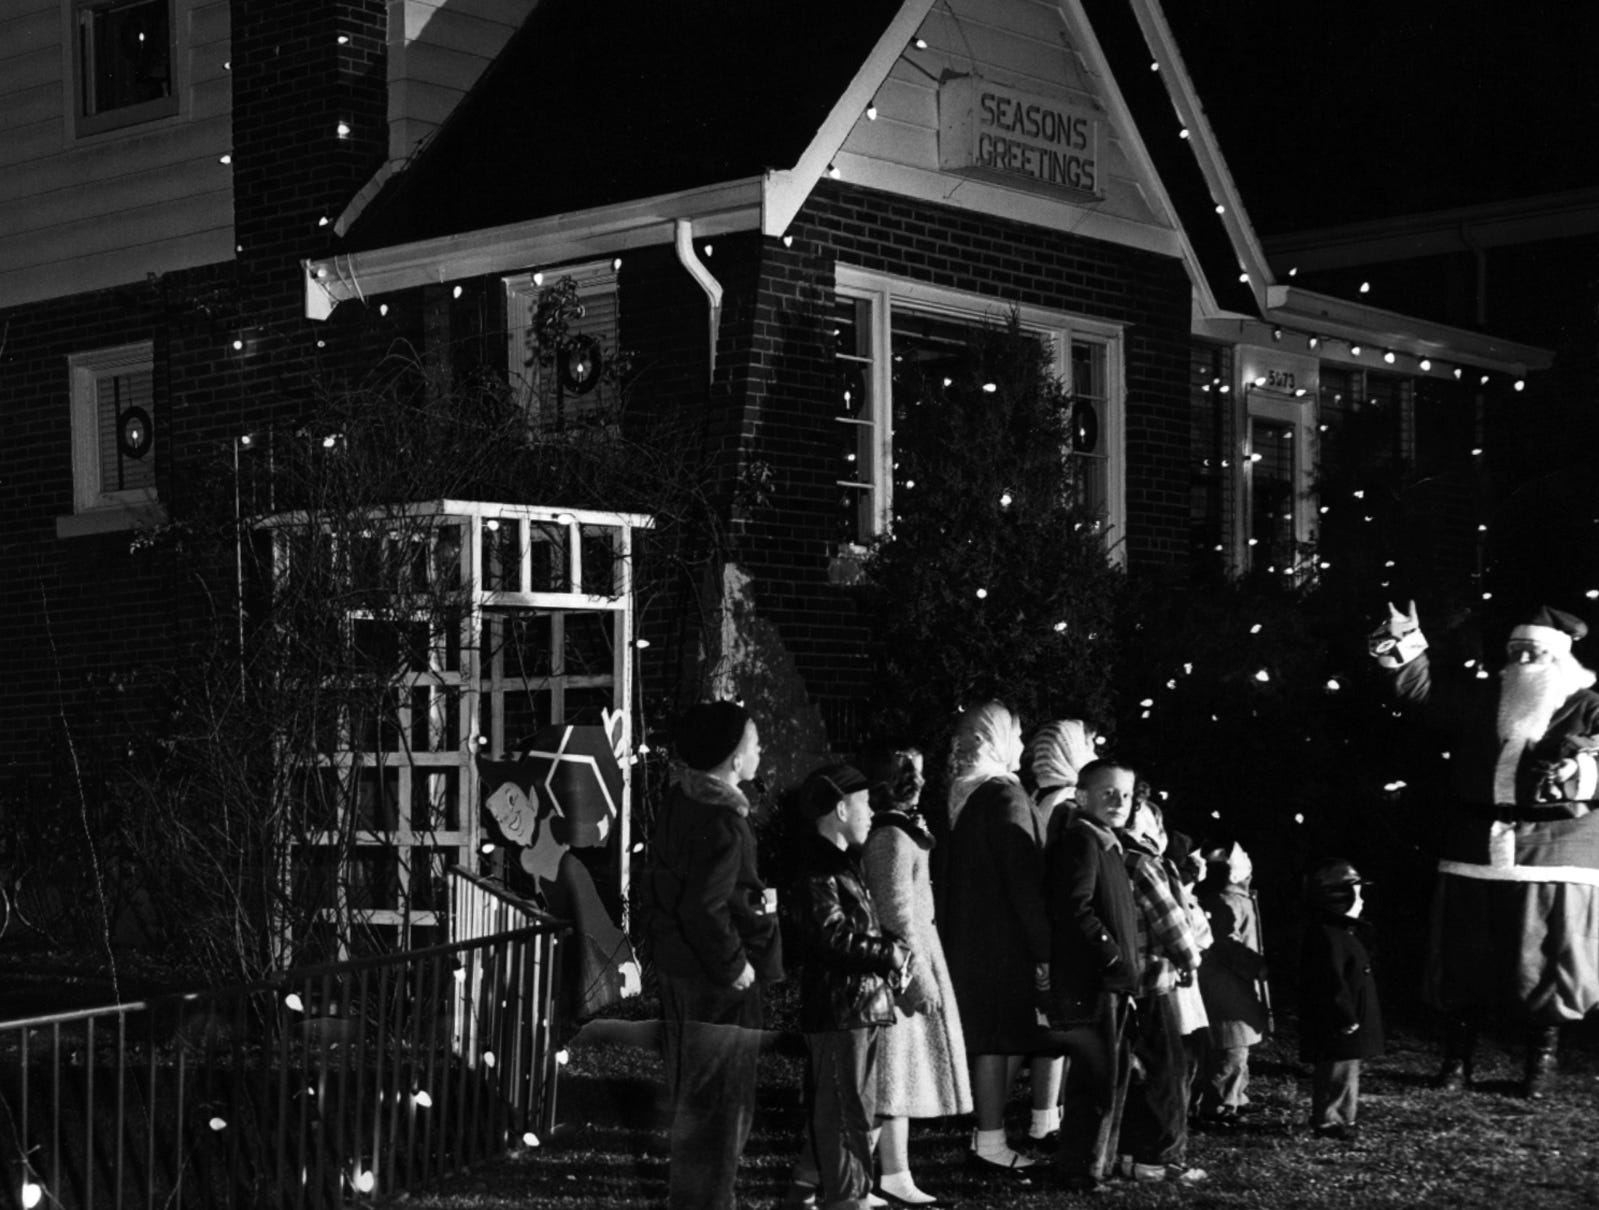 For the third consecutive year, the Christmas, display at the Herman B. Pownall home, 5073 Casa Loma, is attracting Cincinnati youngsters and adults in 1956. The decorations, which contain 1256 bulbs, were put up by Pownall and his son Robert.